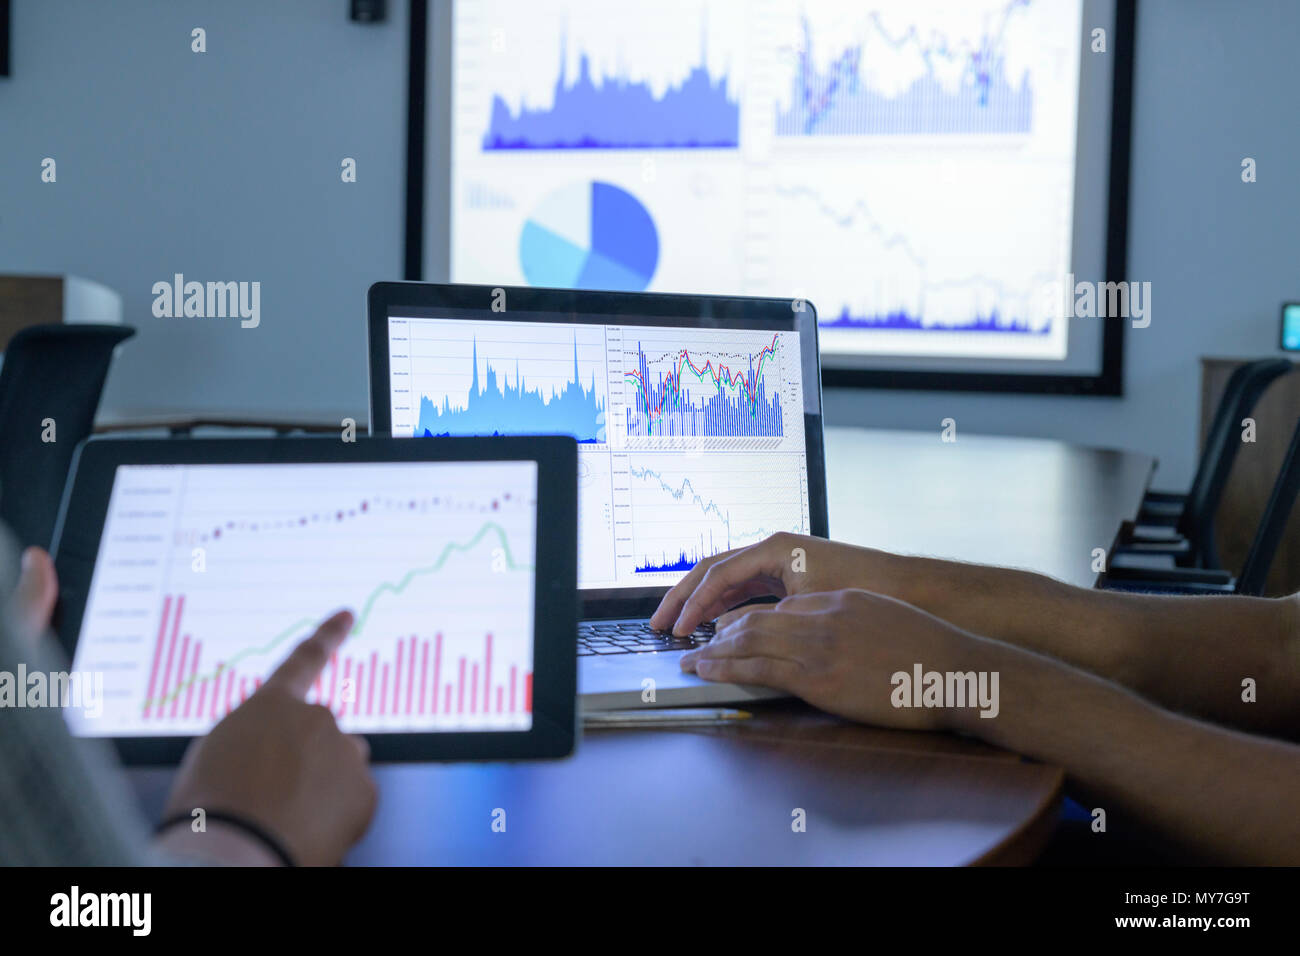 Businessman and woman using screens with graphs and charts in business meeting, close up - Stock Image